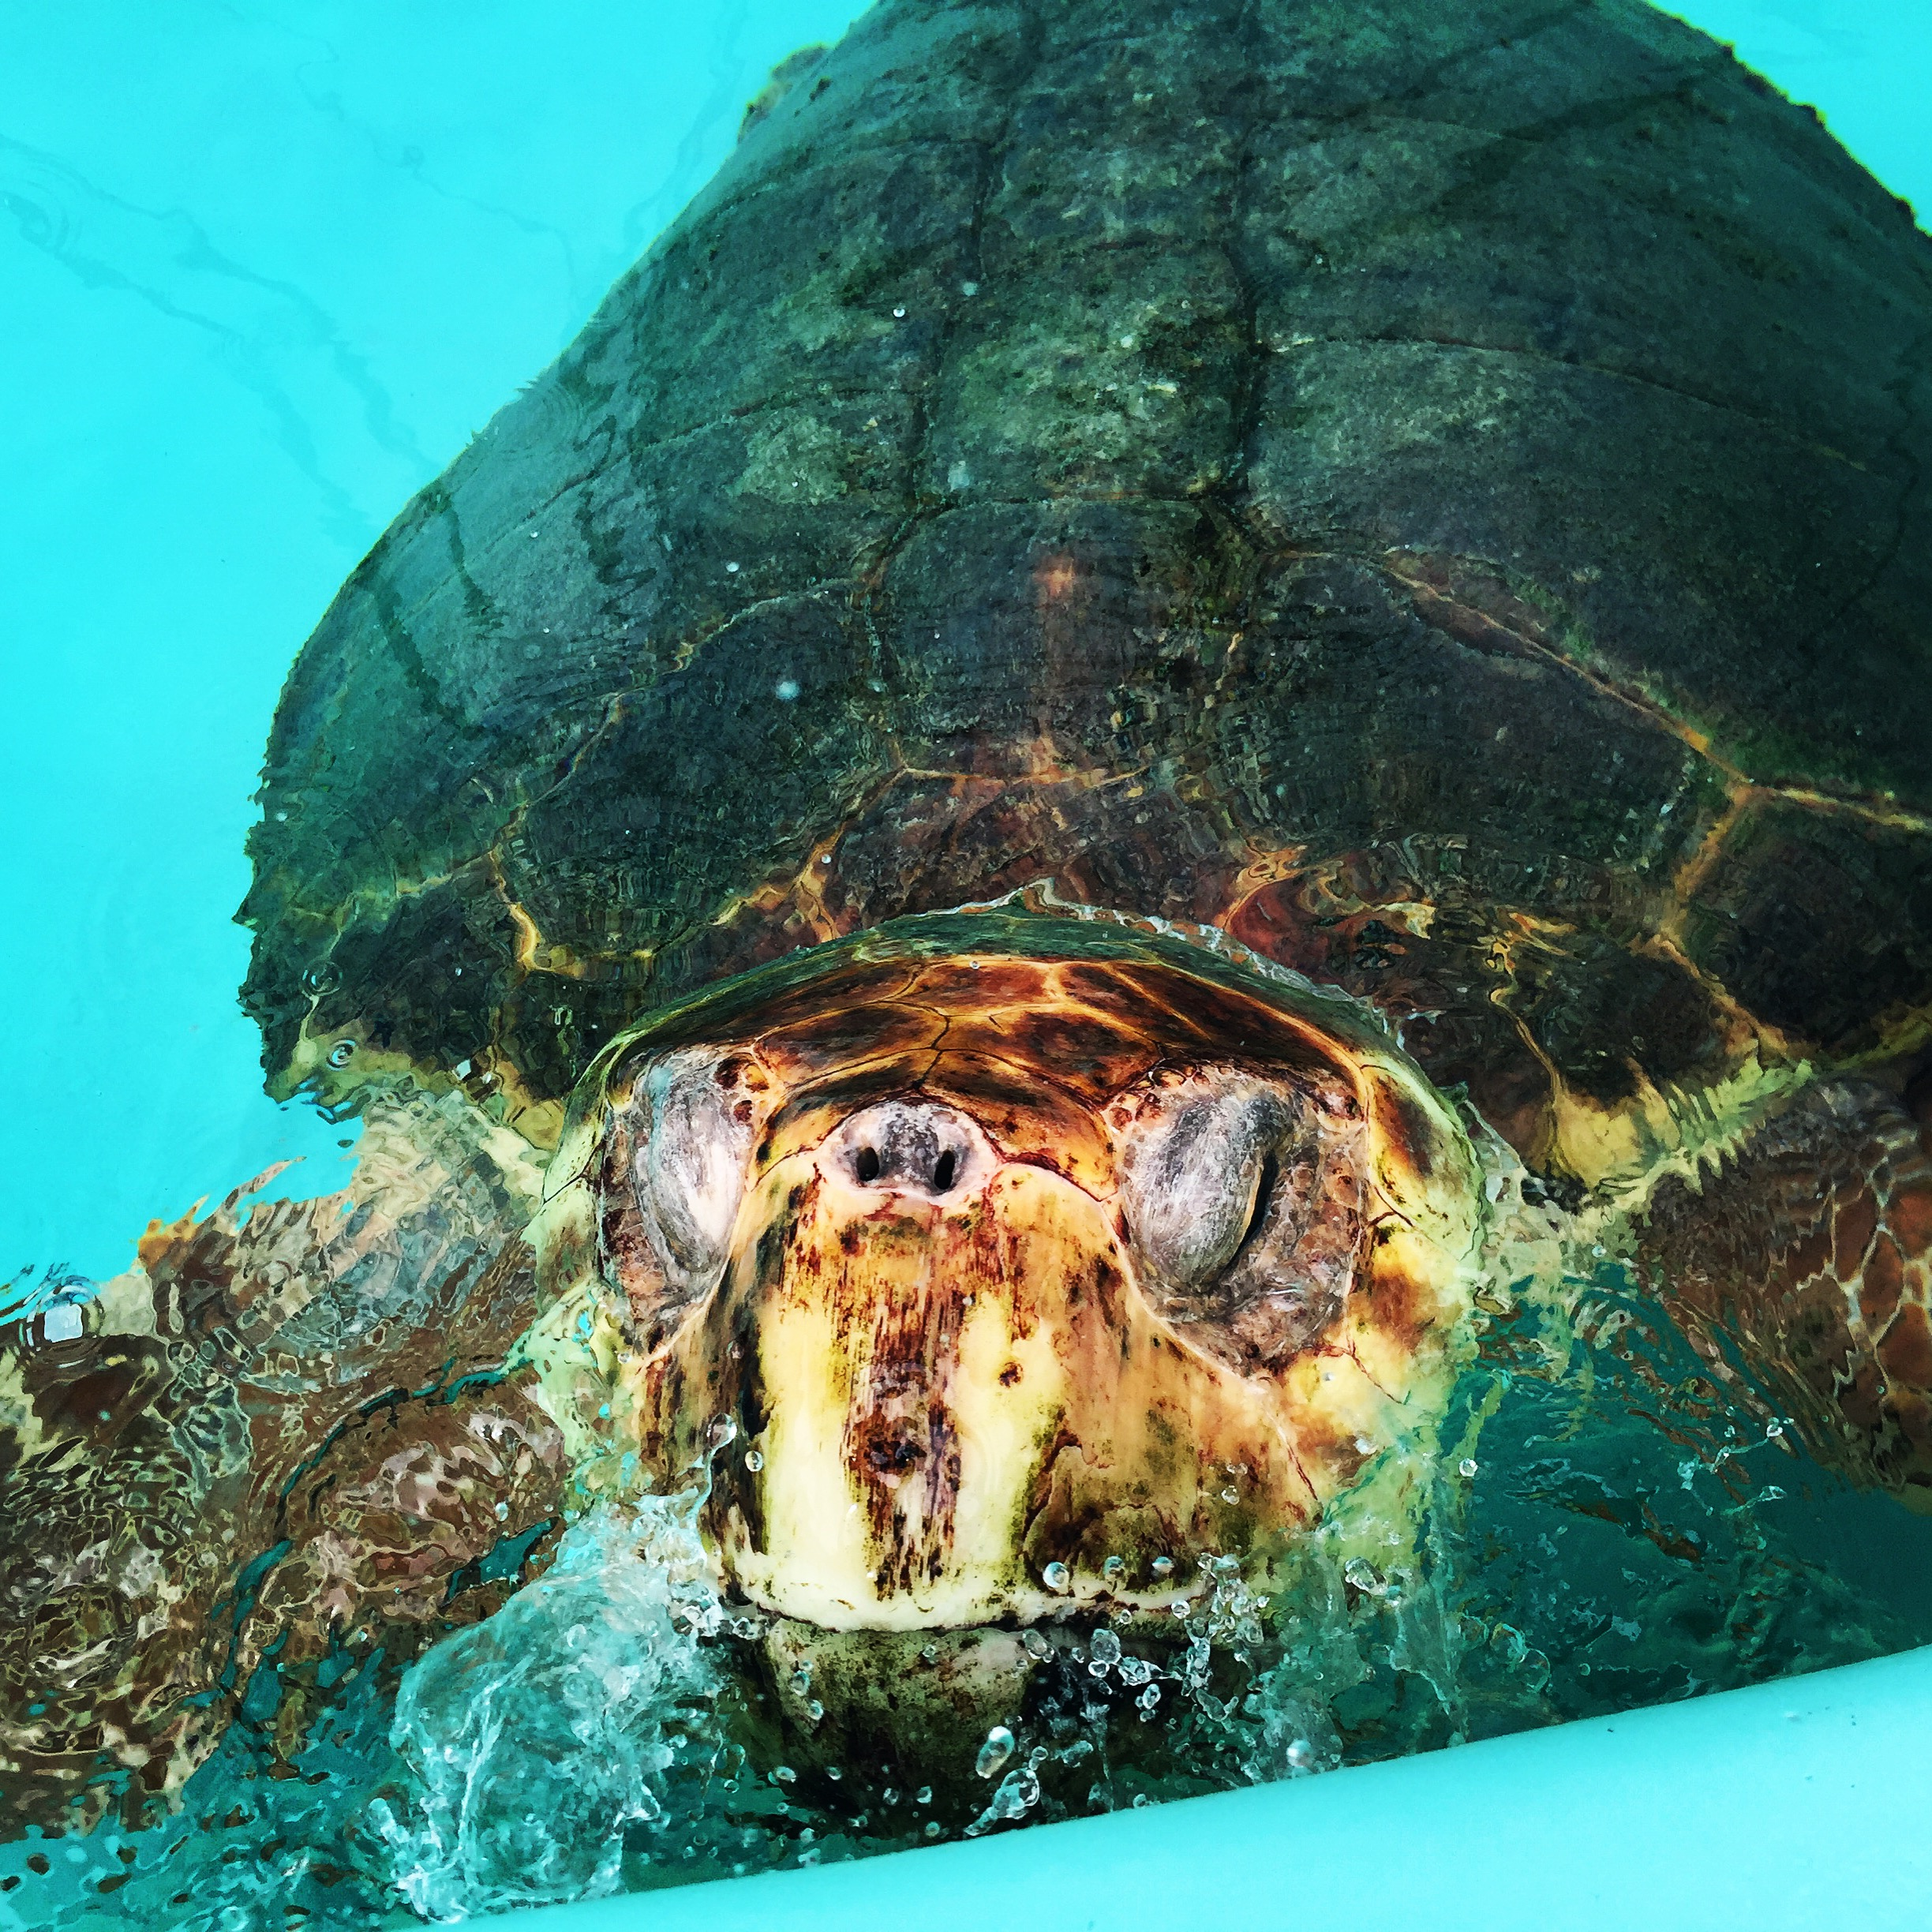 Princess Amanda the Loggerhead sea turtle patient, released back into the  Atlantic Ocean  on June 11, 2015 after successful rehabilitation